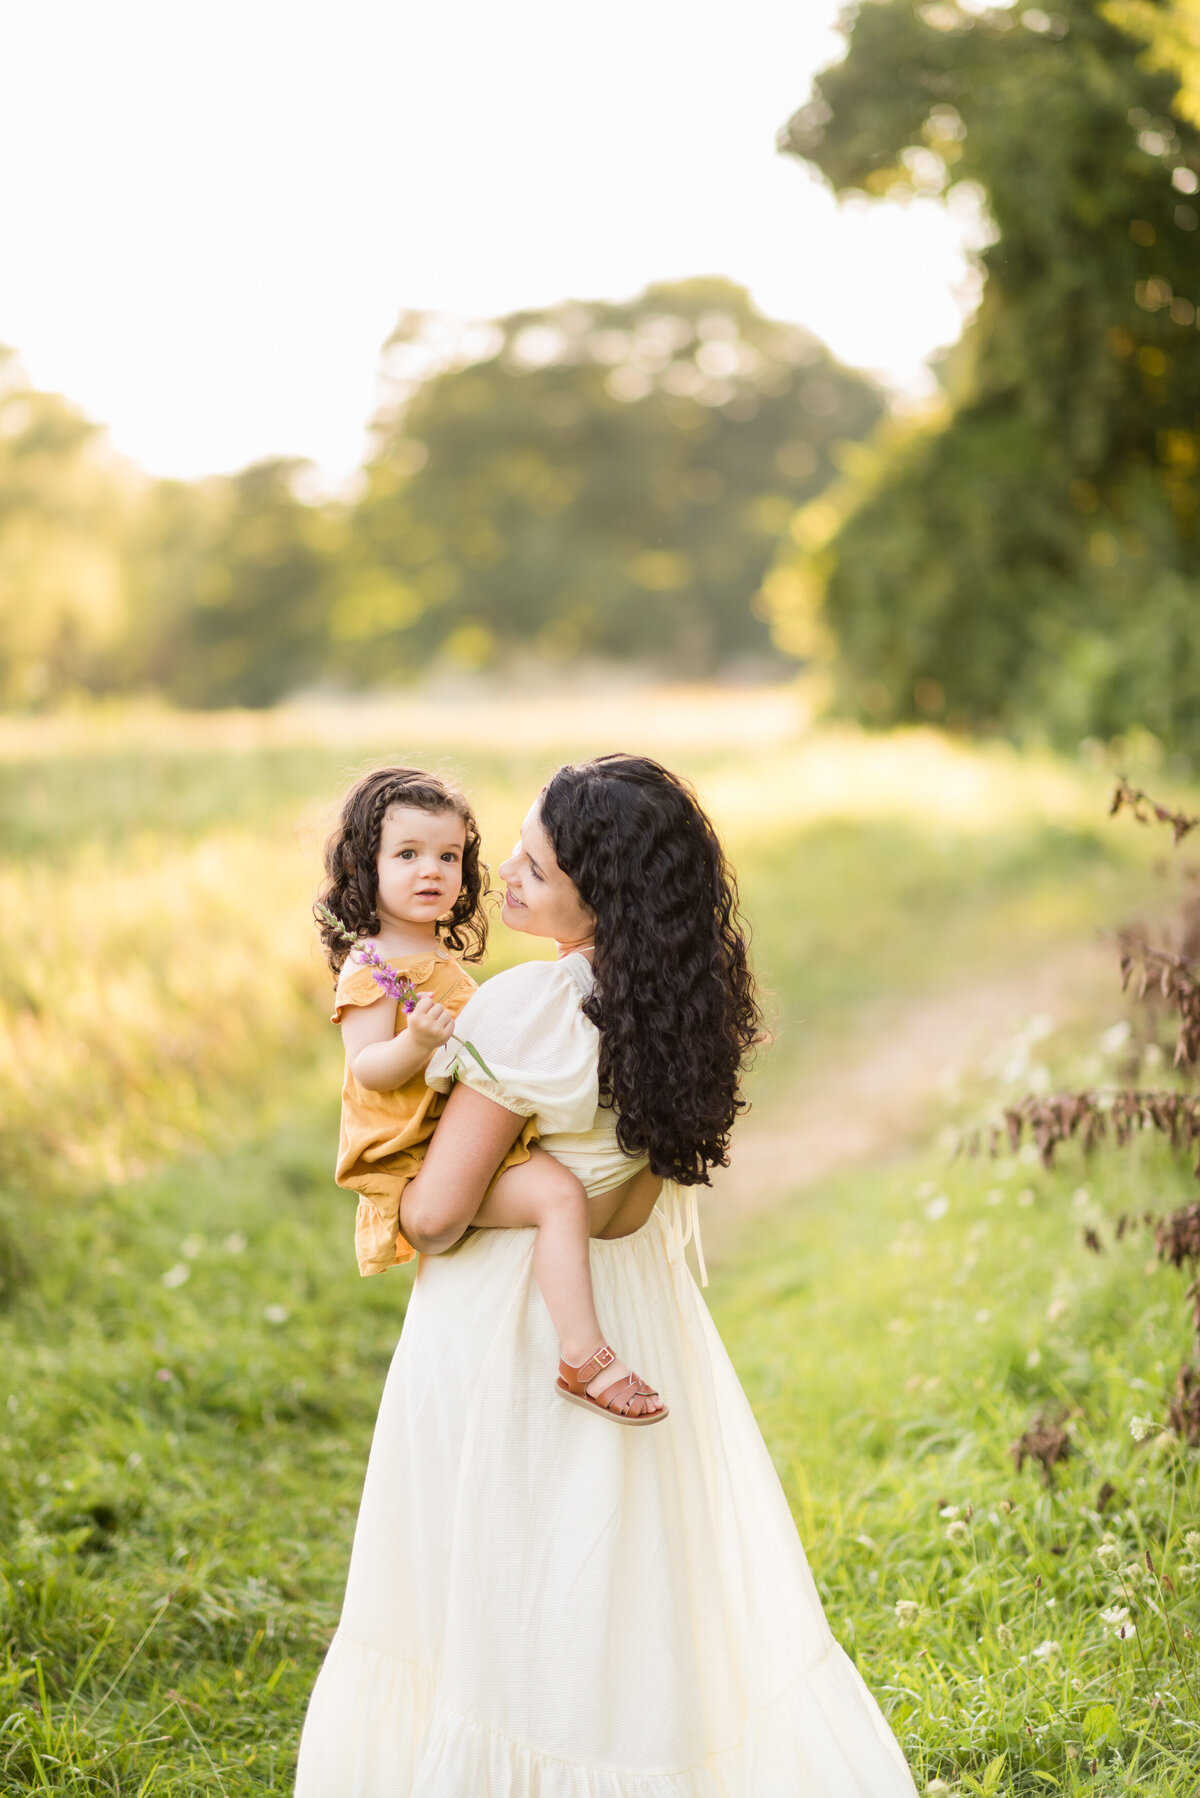 Boston-family-photographer-bella-wang-photography-Lifestyle-session-outdoor-wildflower-17